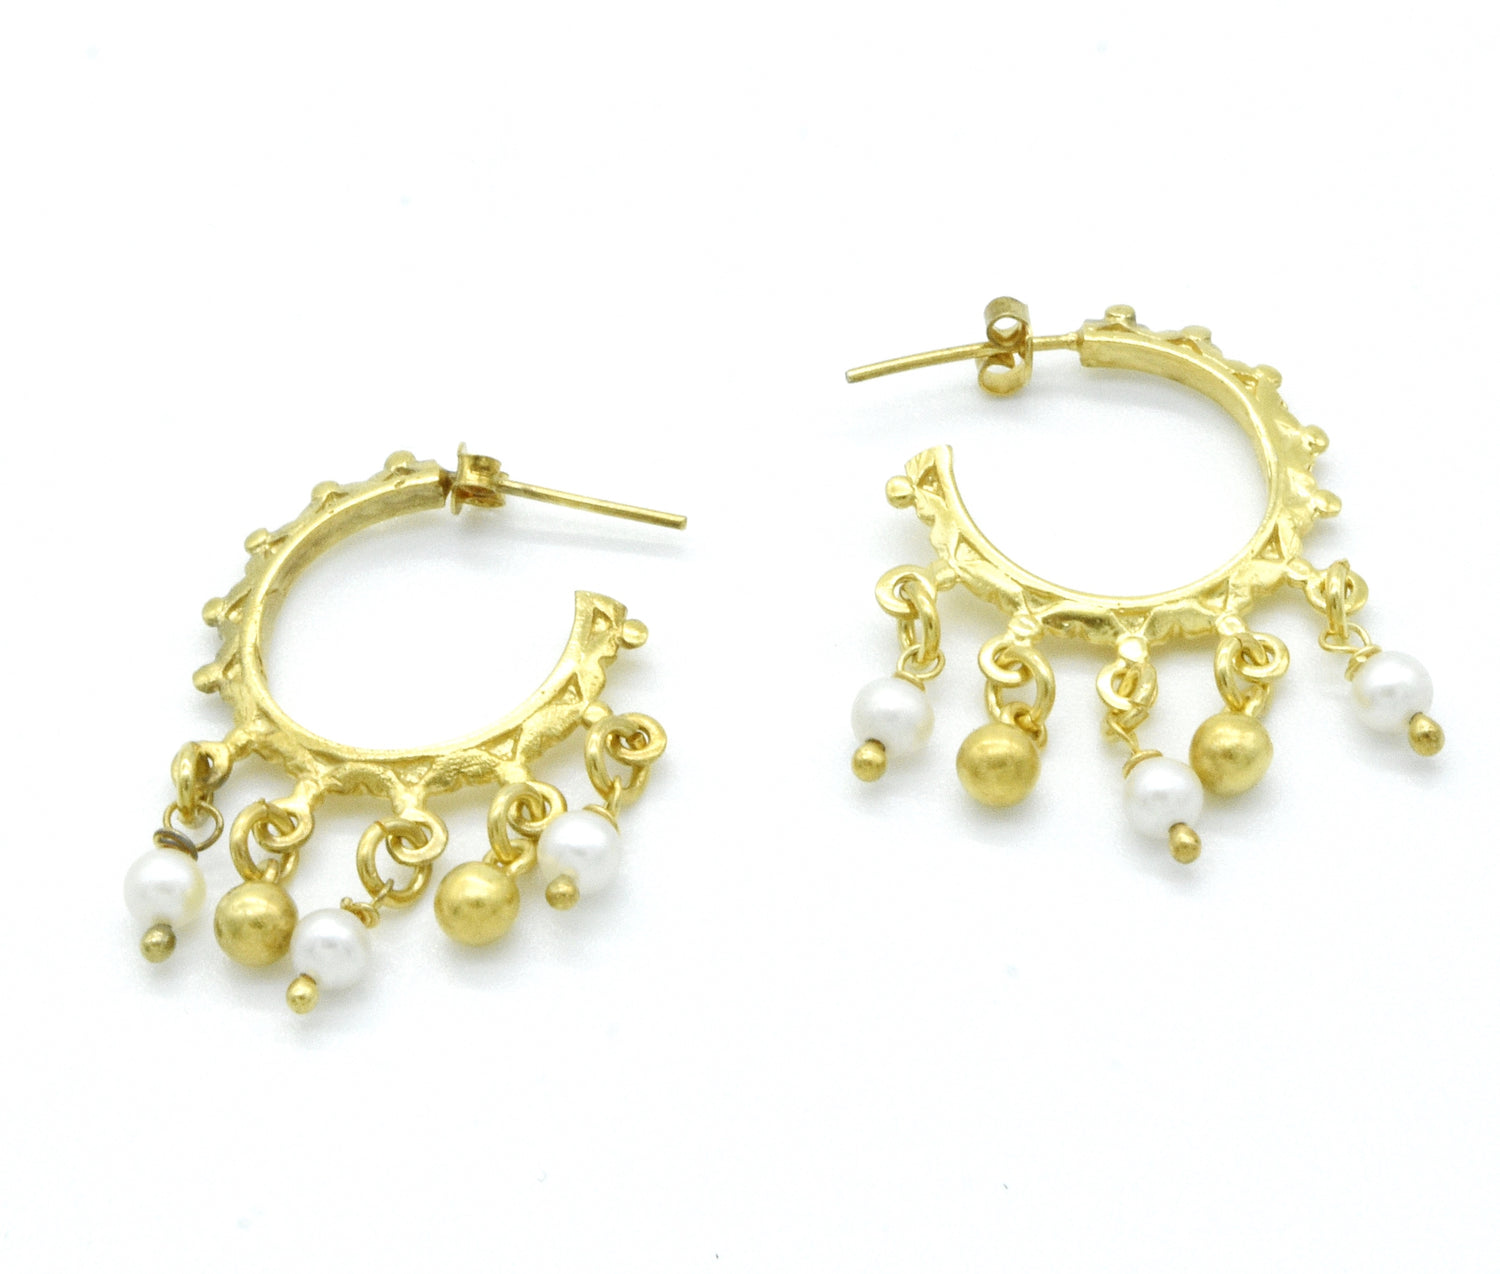 Aylas 21ct gold plated 925 silver Hoop Pearl handmade ottoman earrings - Ottoman Handmade Jewellery Hand Made Gold Plated